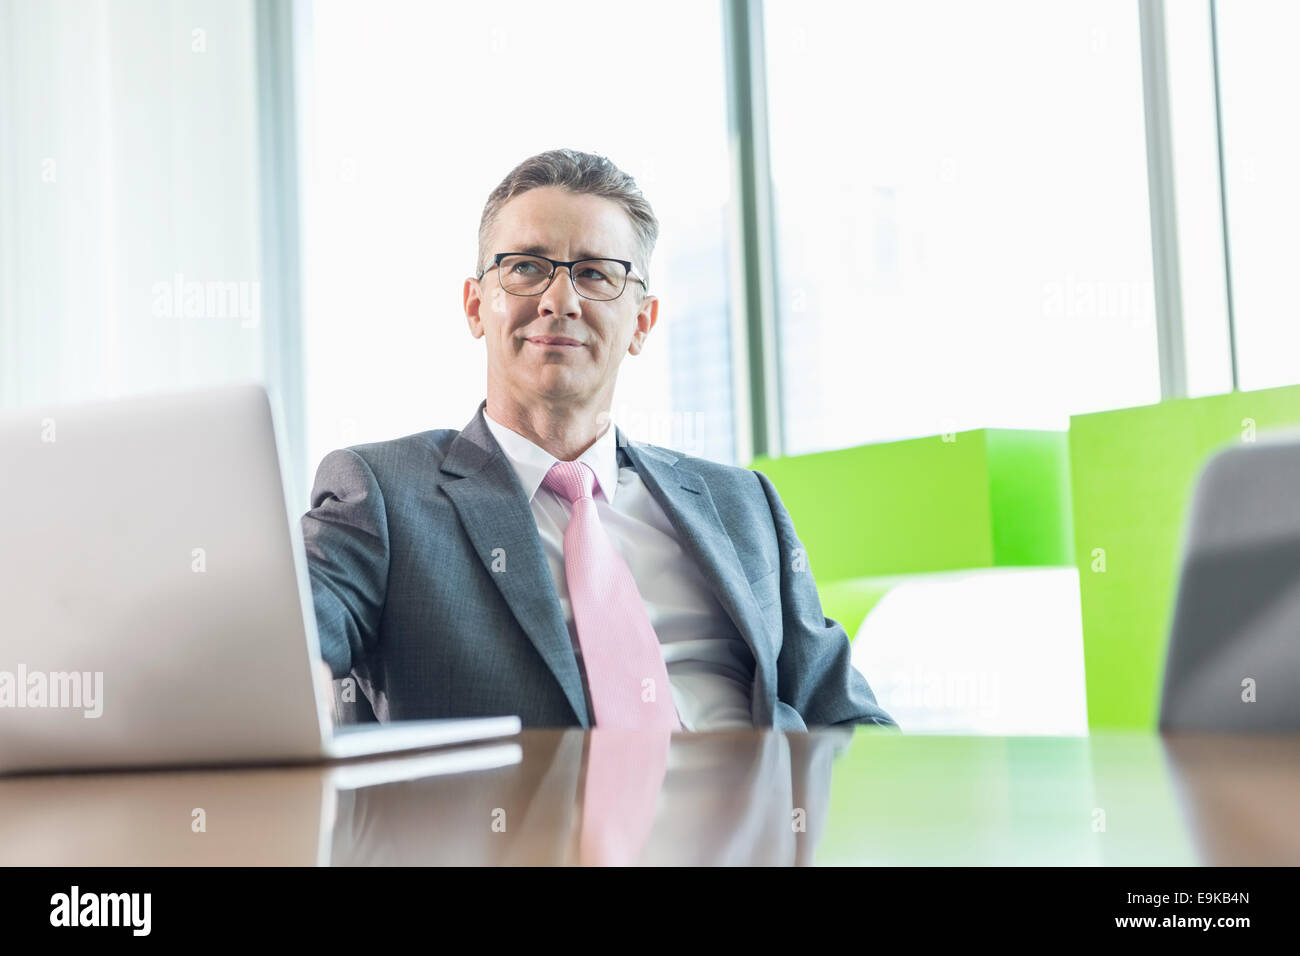 Middle-aged businessman with laptop sitting at conference table - Stock Image